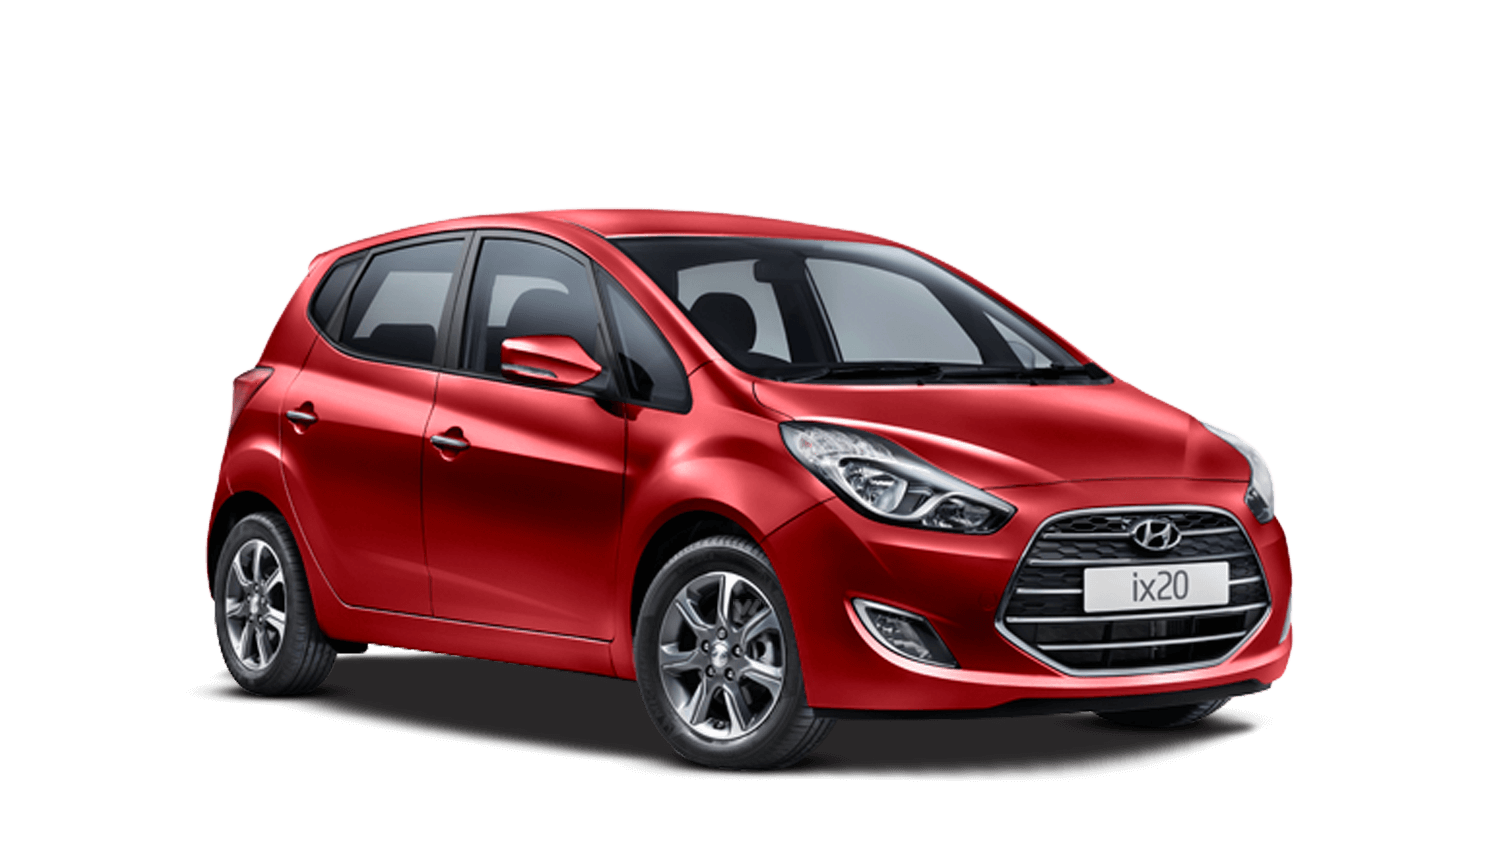 Fiery Red Hyundai ix20